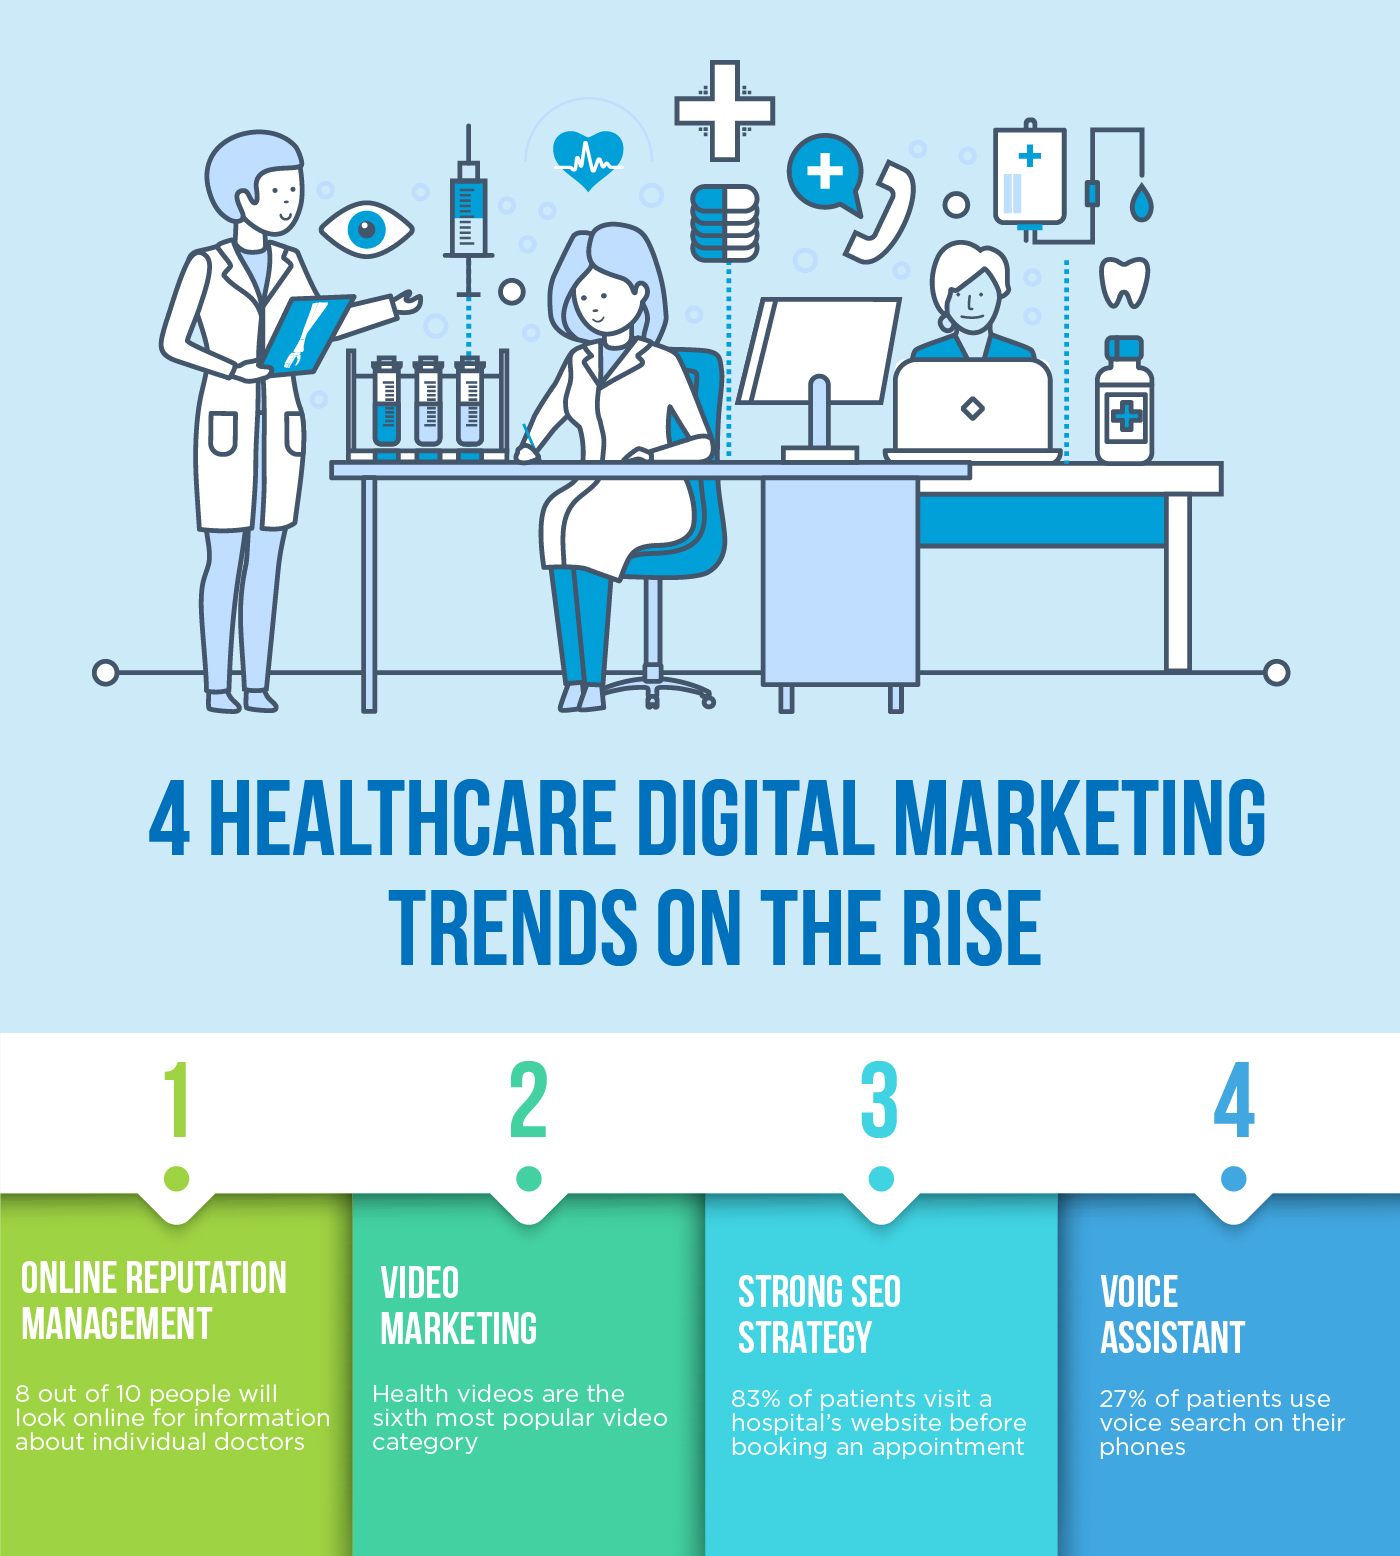 4 Healthcare Digital Marketing Trends on the Rise for 2019